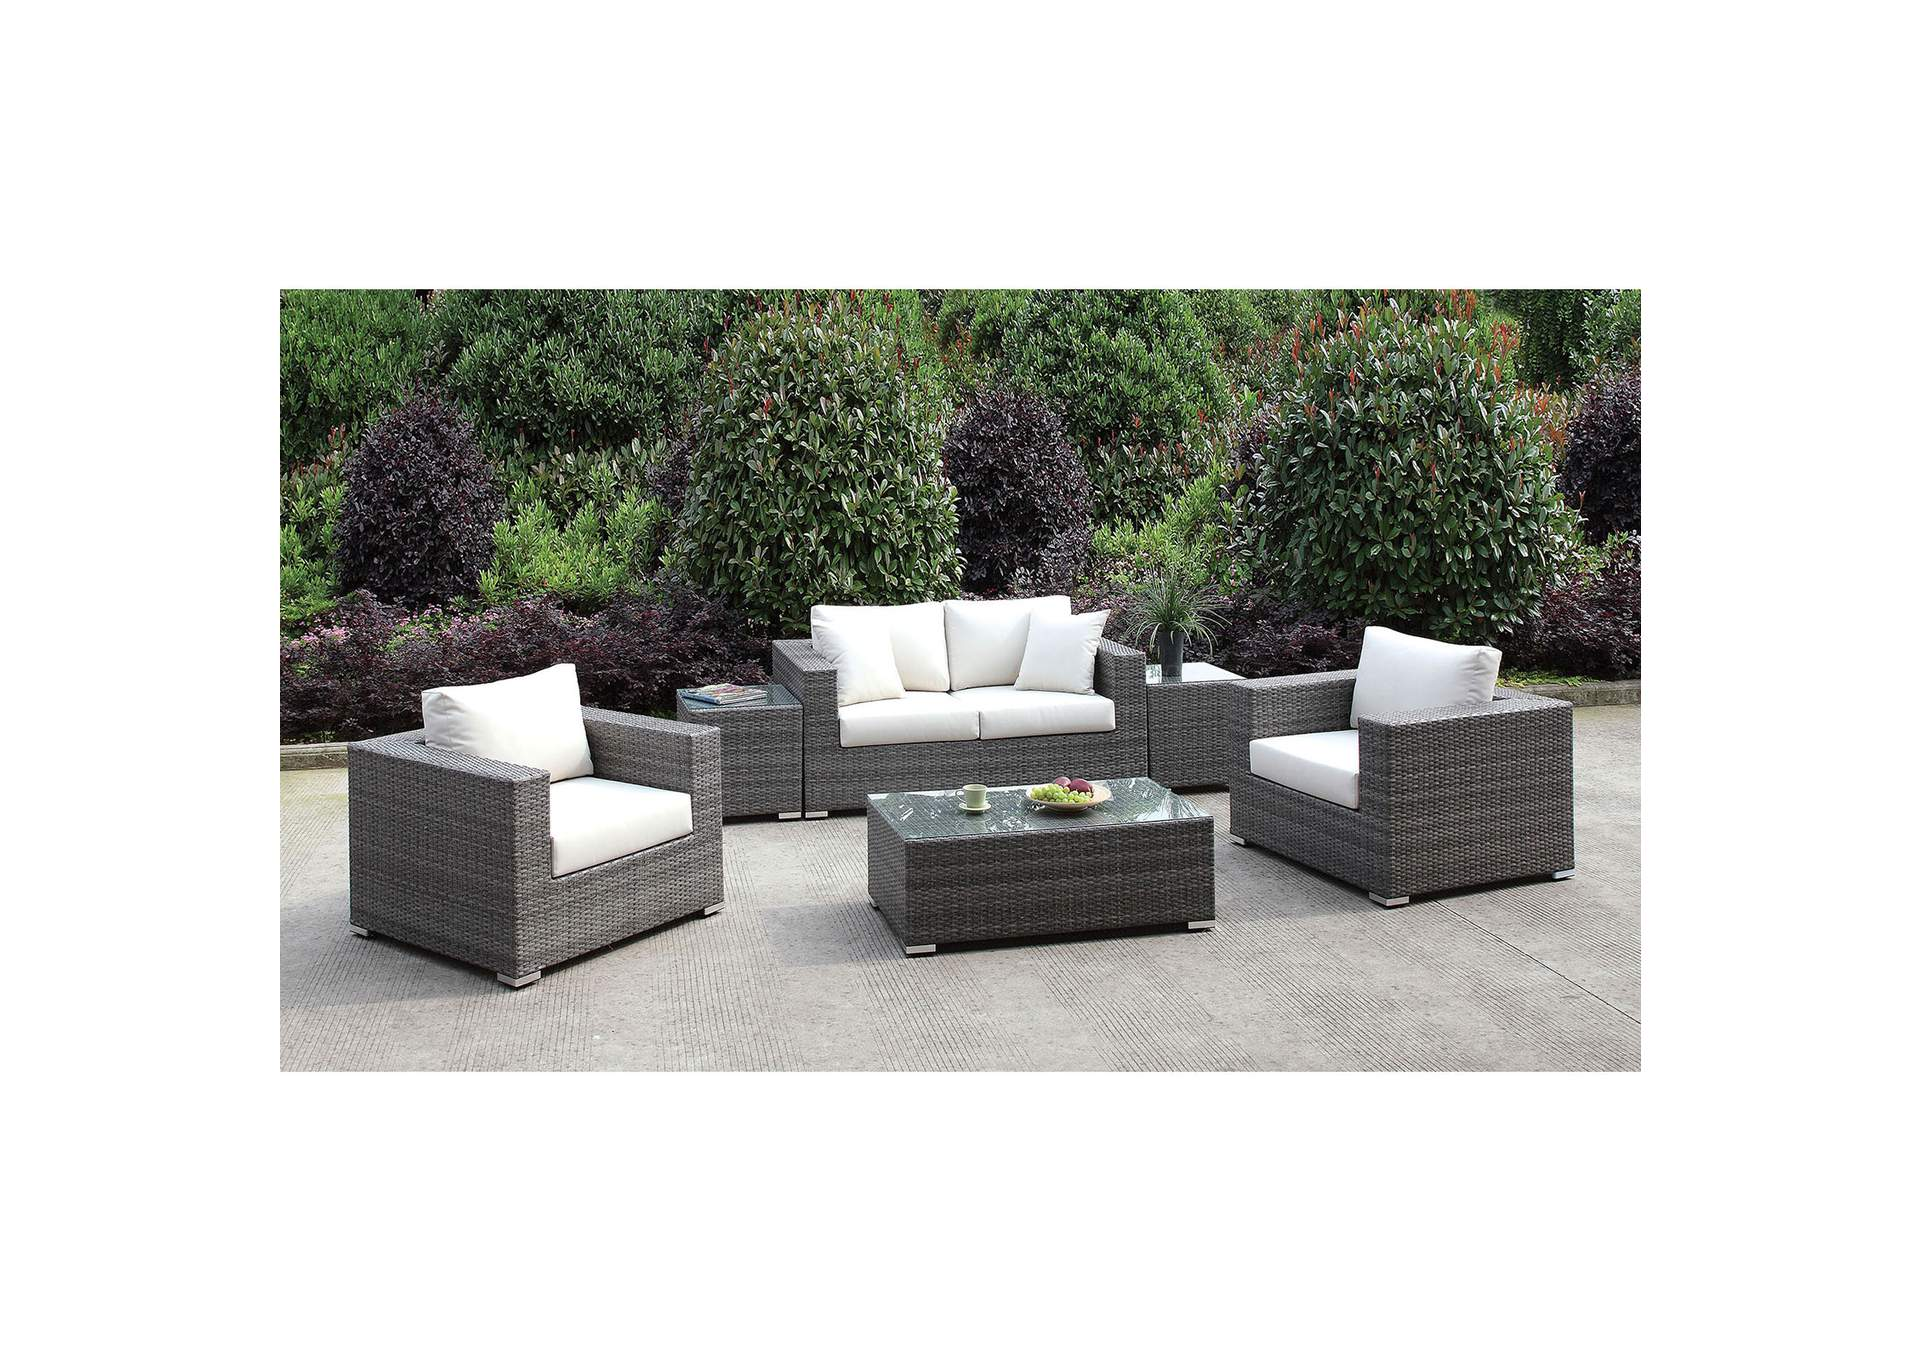 Somani Light Gray/Ivory Wicker Patio Set (Loveseat, 2 Chairs, 2 End Tables & Coffee Table),Furniture of America